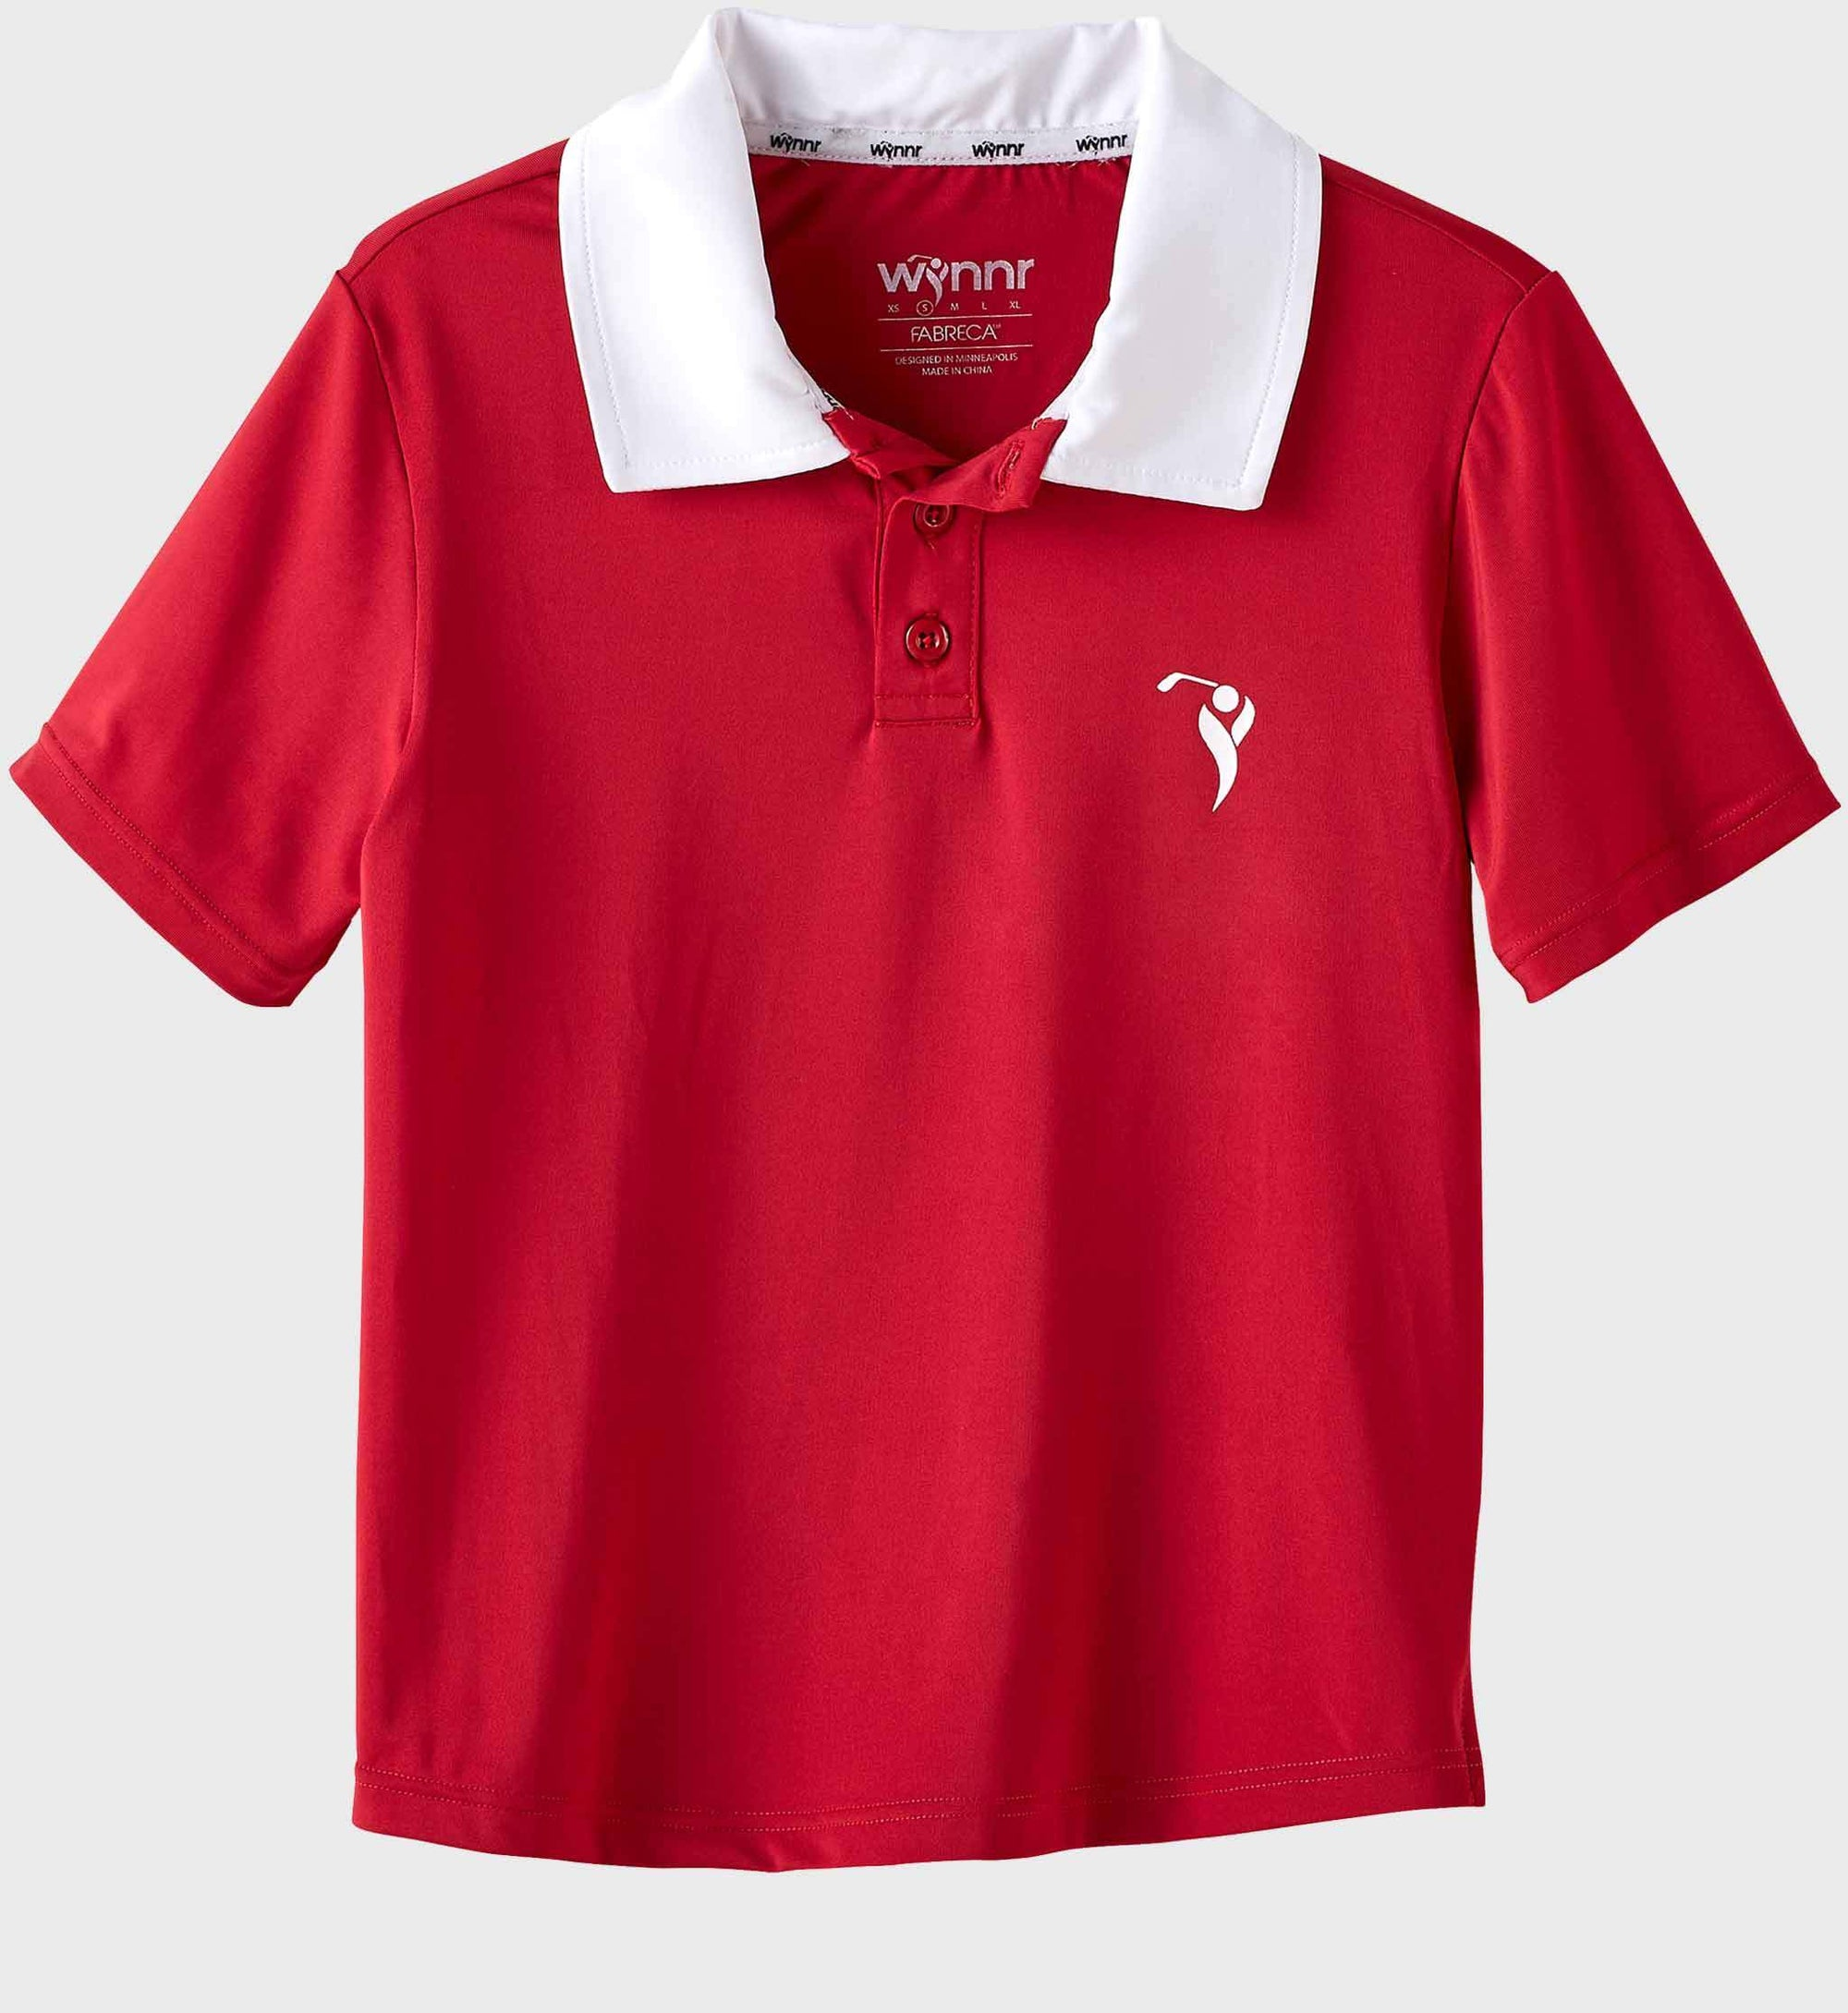 4297c565 Boys Junior Golf Short Sleeve Dark Red Performance Polo - Wynnr